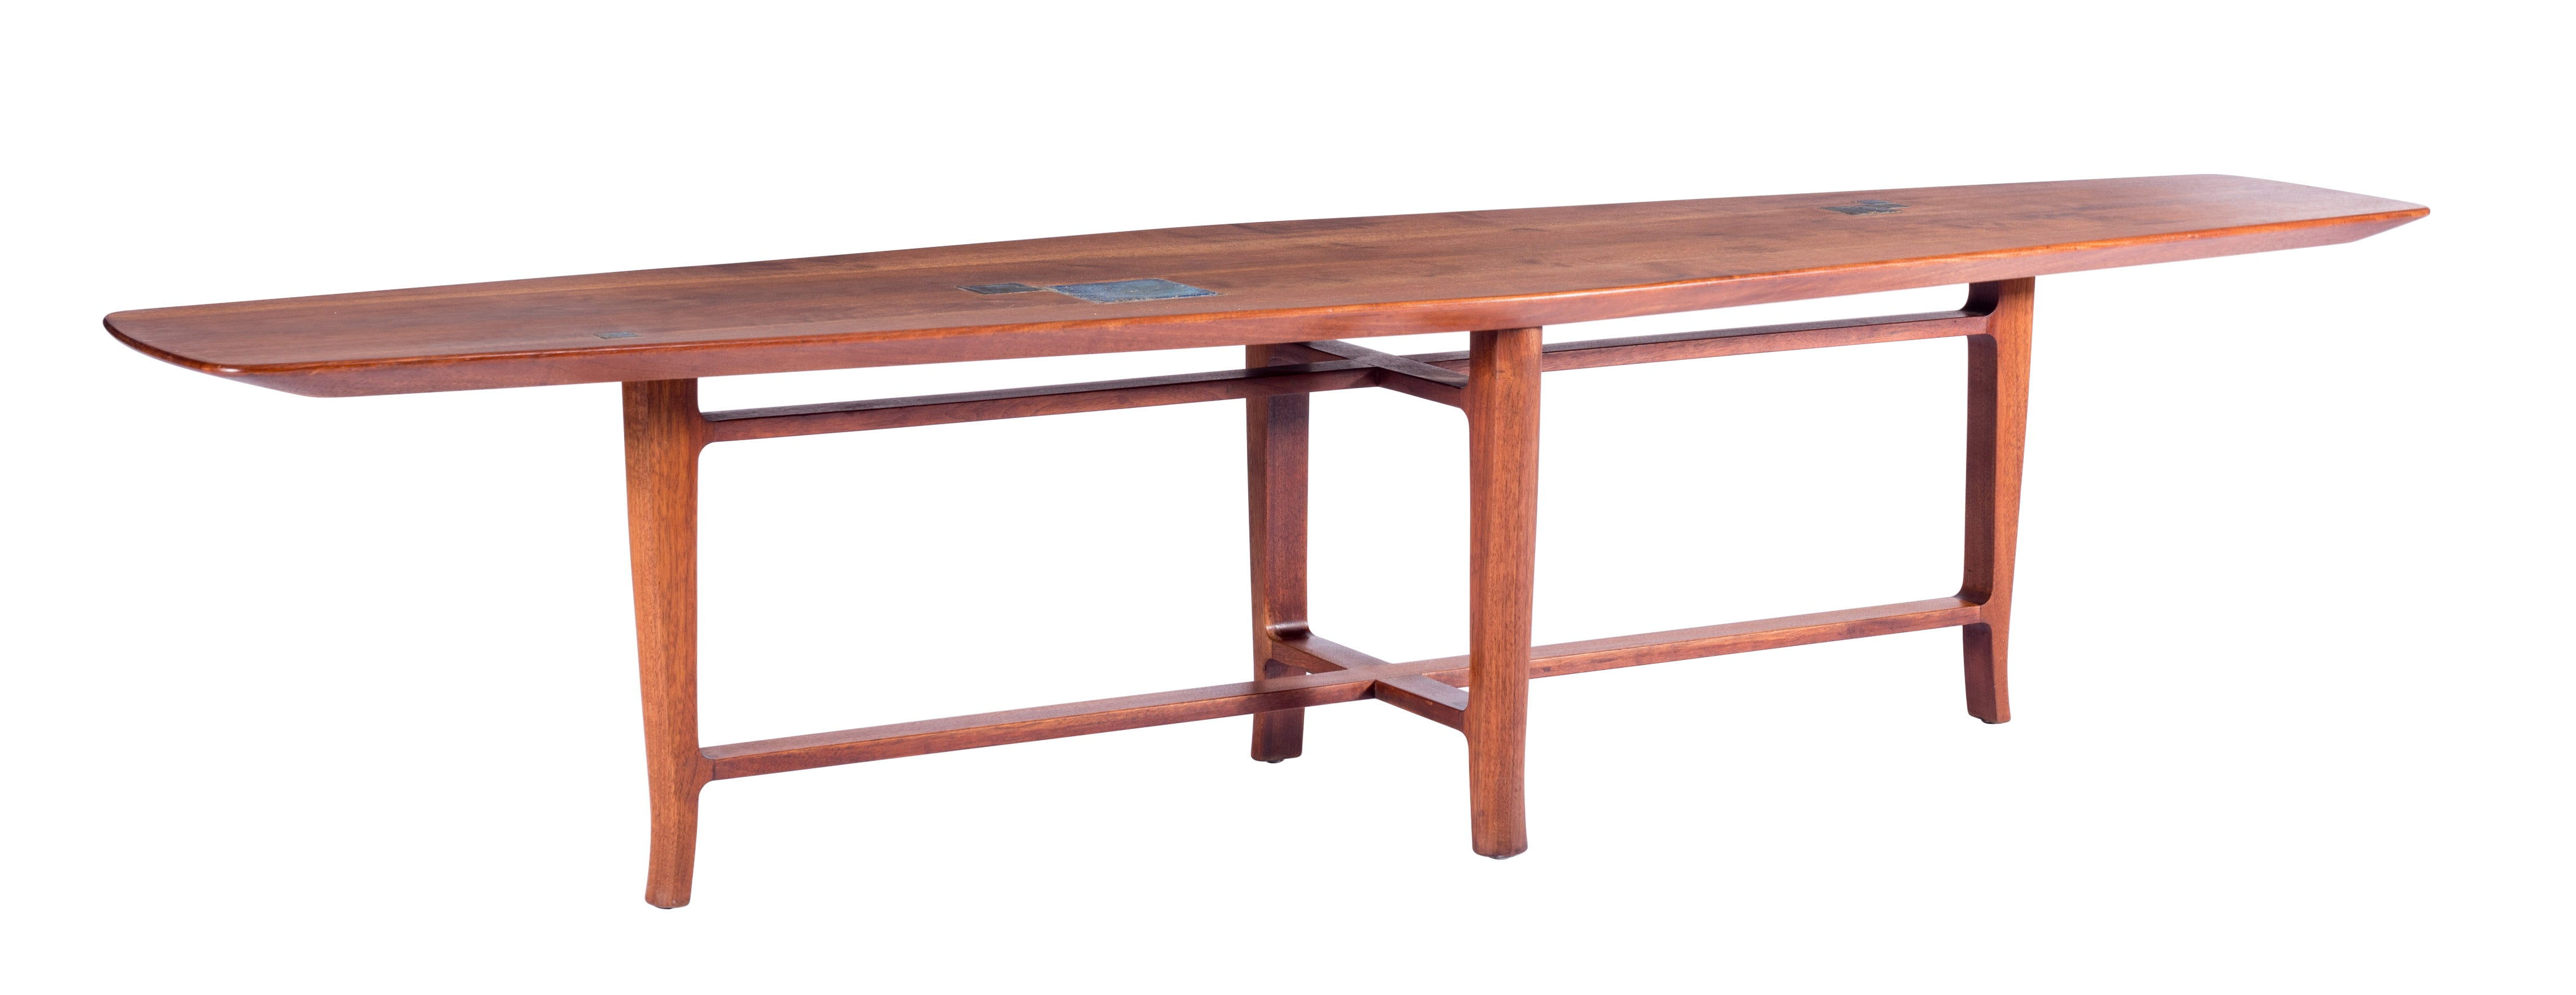 fcb58aa52b30 Dunbar Coffee Table with Tiffany Tiles by Edward Wormley For Sale at 1stdibs